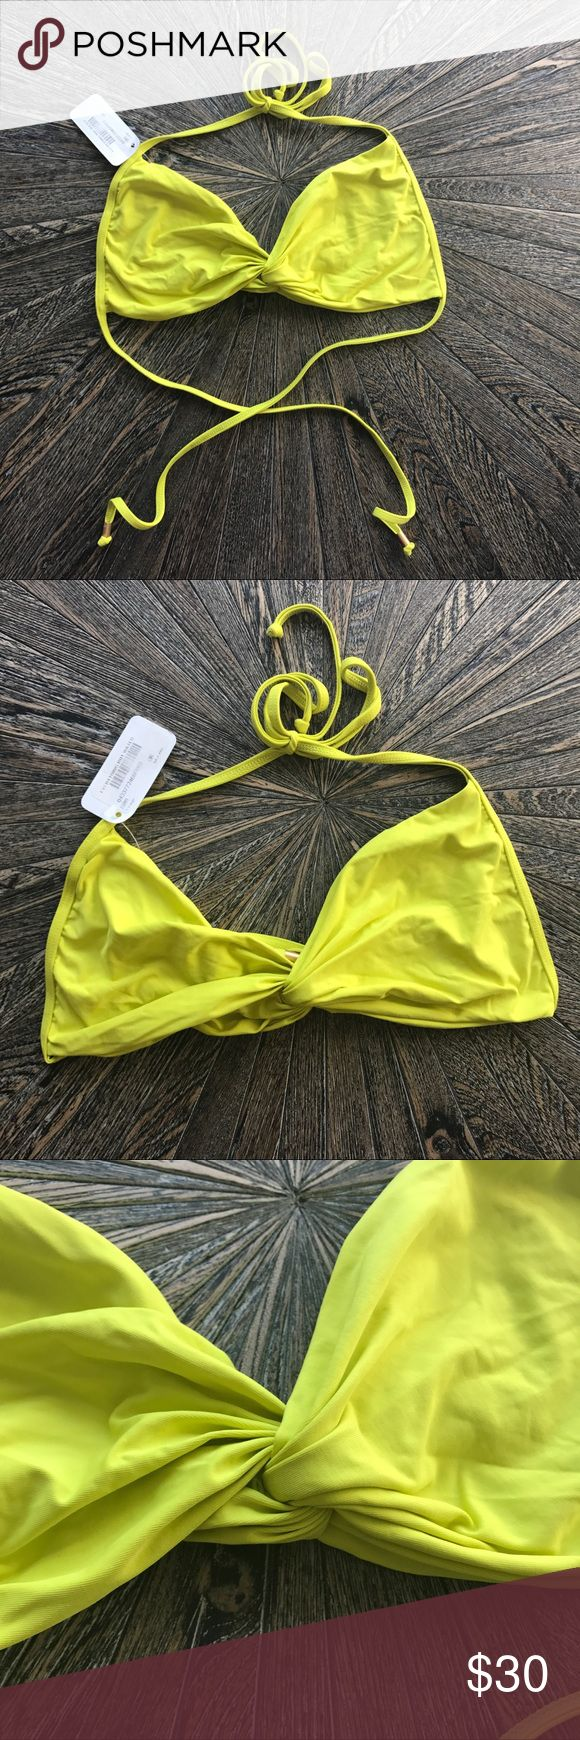 New L Space Lola twist bikini top Bandeau Citron New with tags  PERFECT BIKINI FOR YOUR COLLECTION!!!! L SPACE BIKINI SWIMSUIT TOP!   HARD TO FIND! SOLD OUT EVERYWHERE!!   THIS LISTING IS FOR A L*SPACE BIKINI SWIMSUIT TOP   *NEW WITH TAGS   * Size XL (runs smaller. I'd say more like a large)   * Brand ~ L*SPACE   *Style ~ LOLA TWIST BANDEAU TOP l*space Swim Bikinis